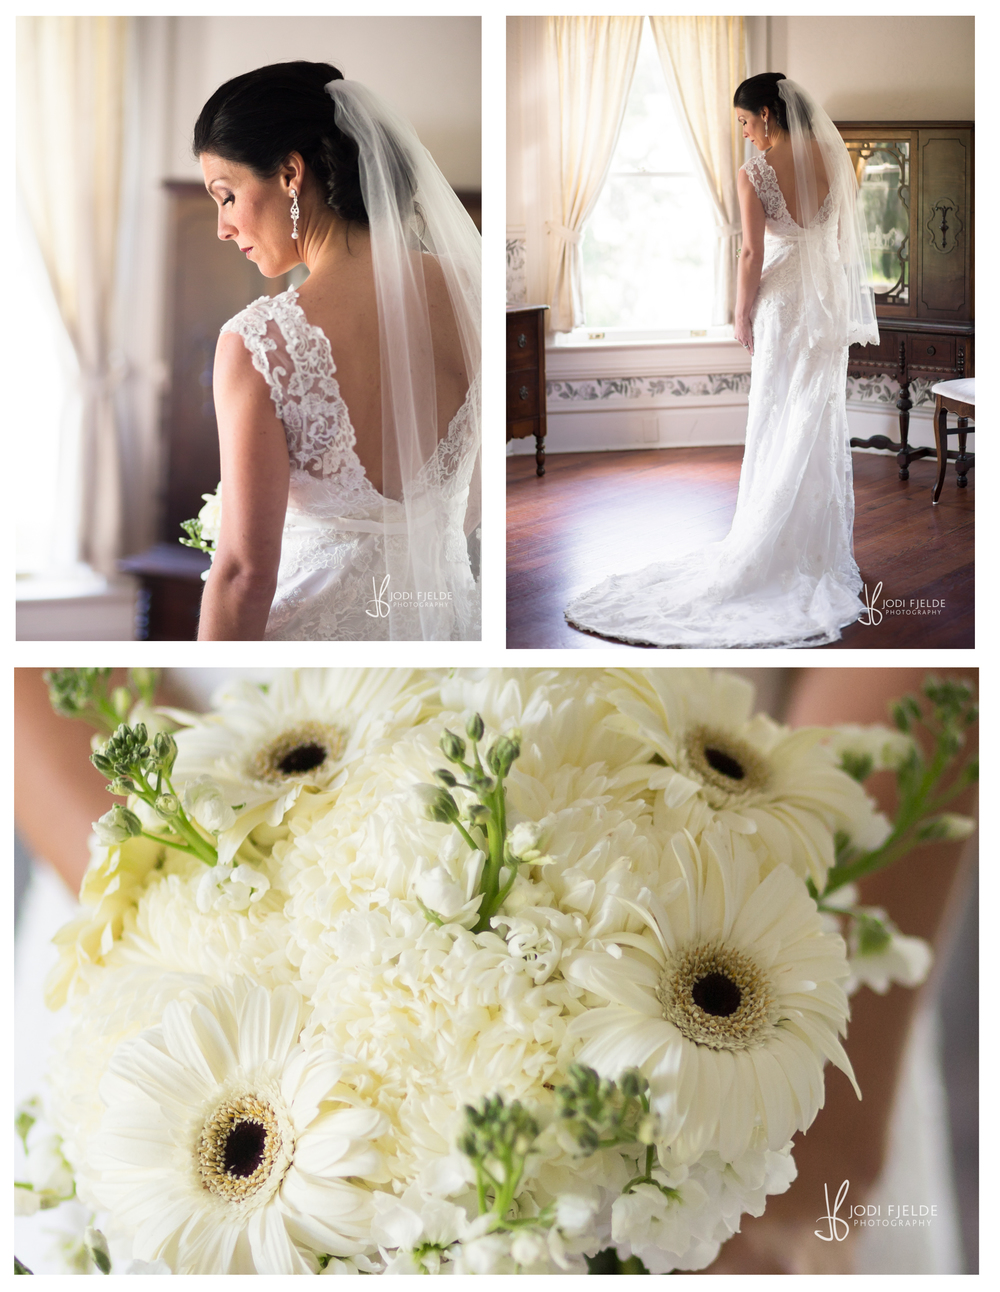 Highland_Manor_Apopka_Florida_wedding_Jackie_&_Tim_photography_jodi_Fjelde_photography-9.jpg